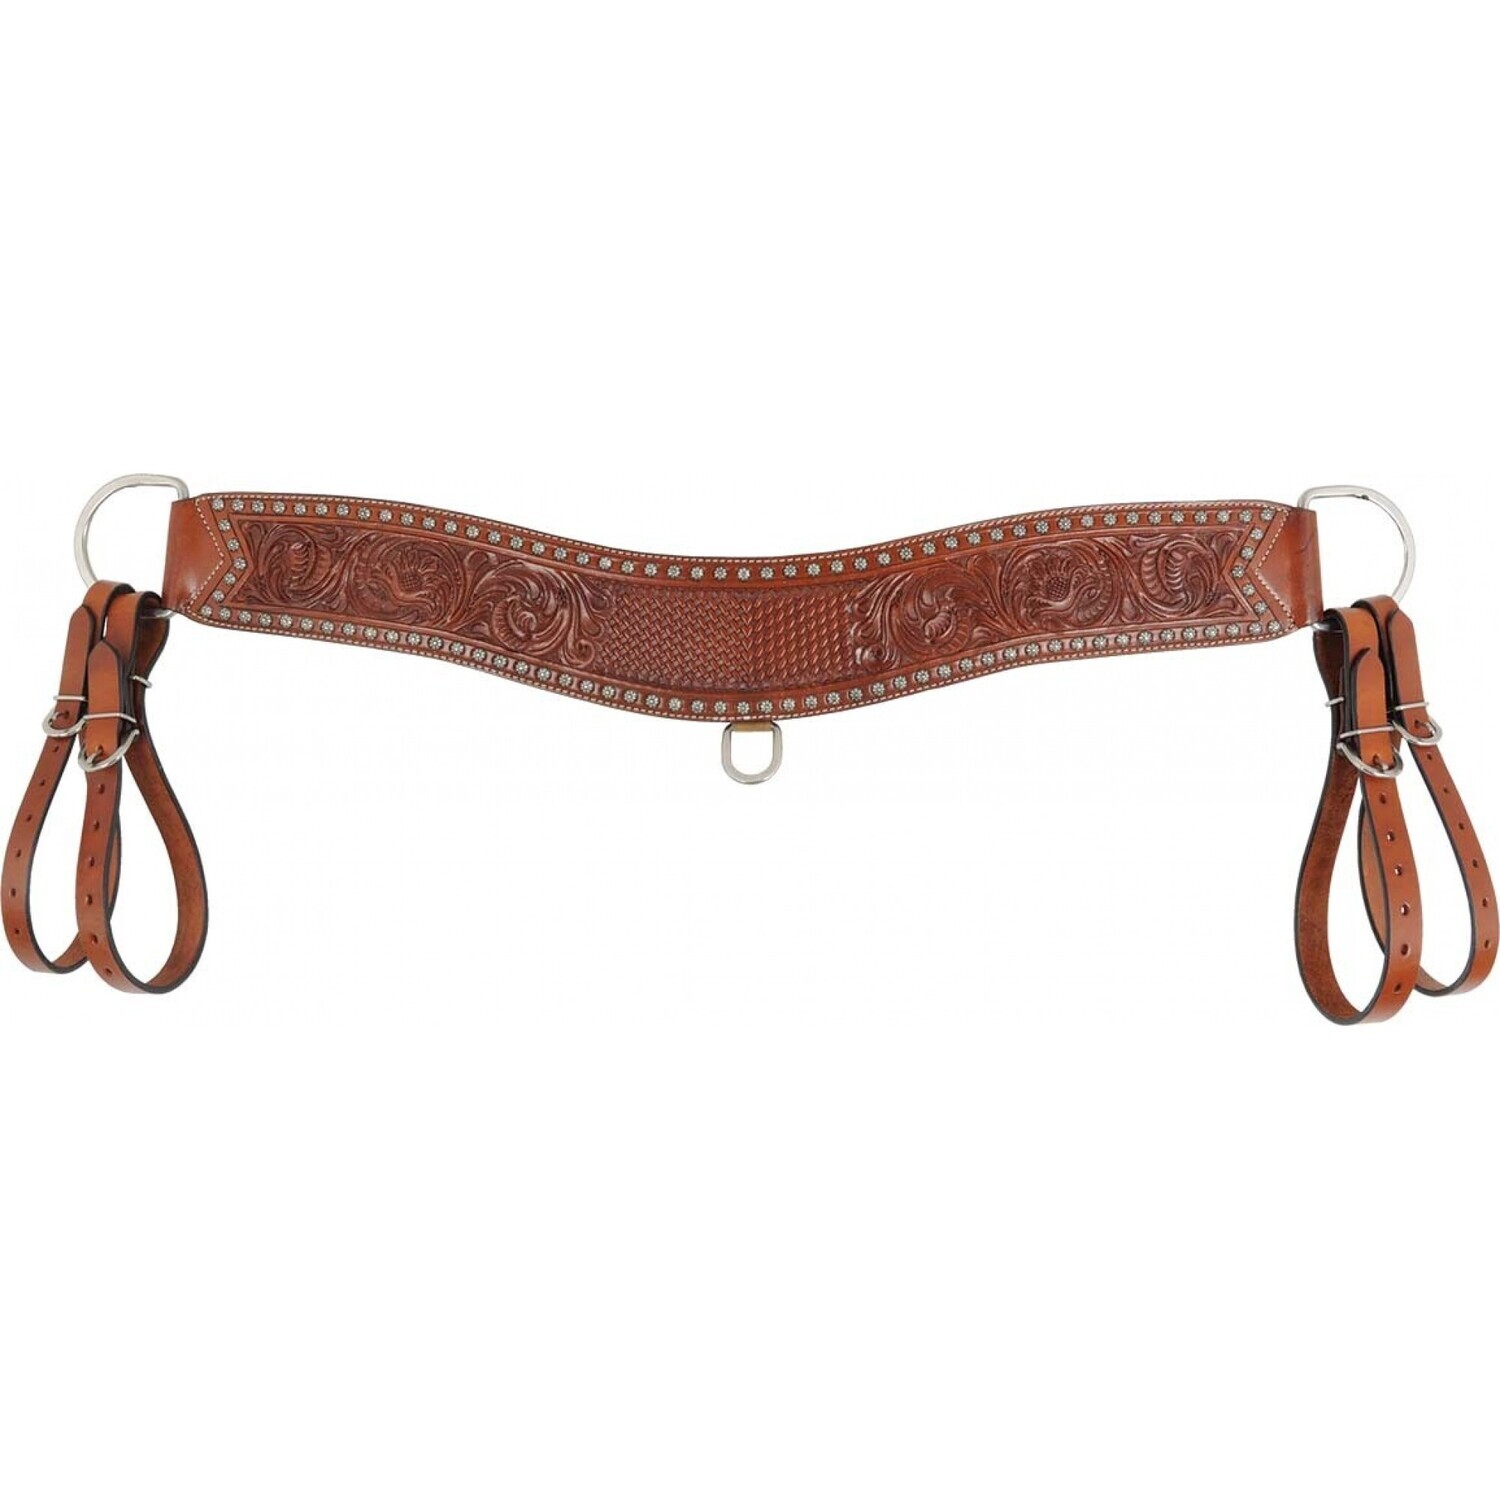 COUNTRY LEGEND TRIPPING COLLAR W/BASKET FLORAL